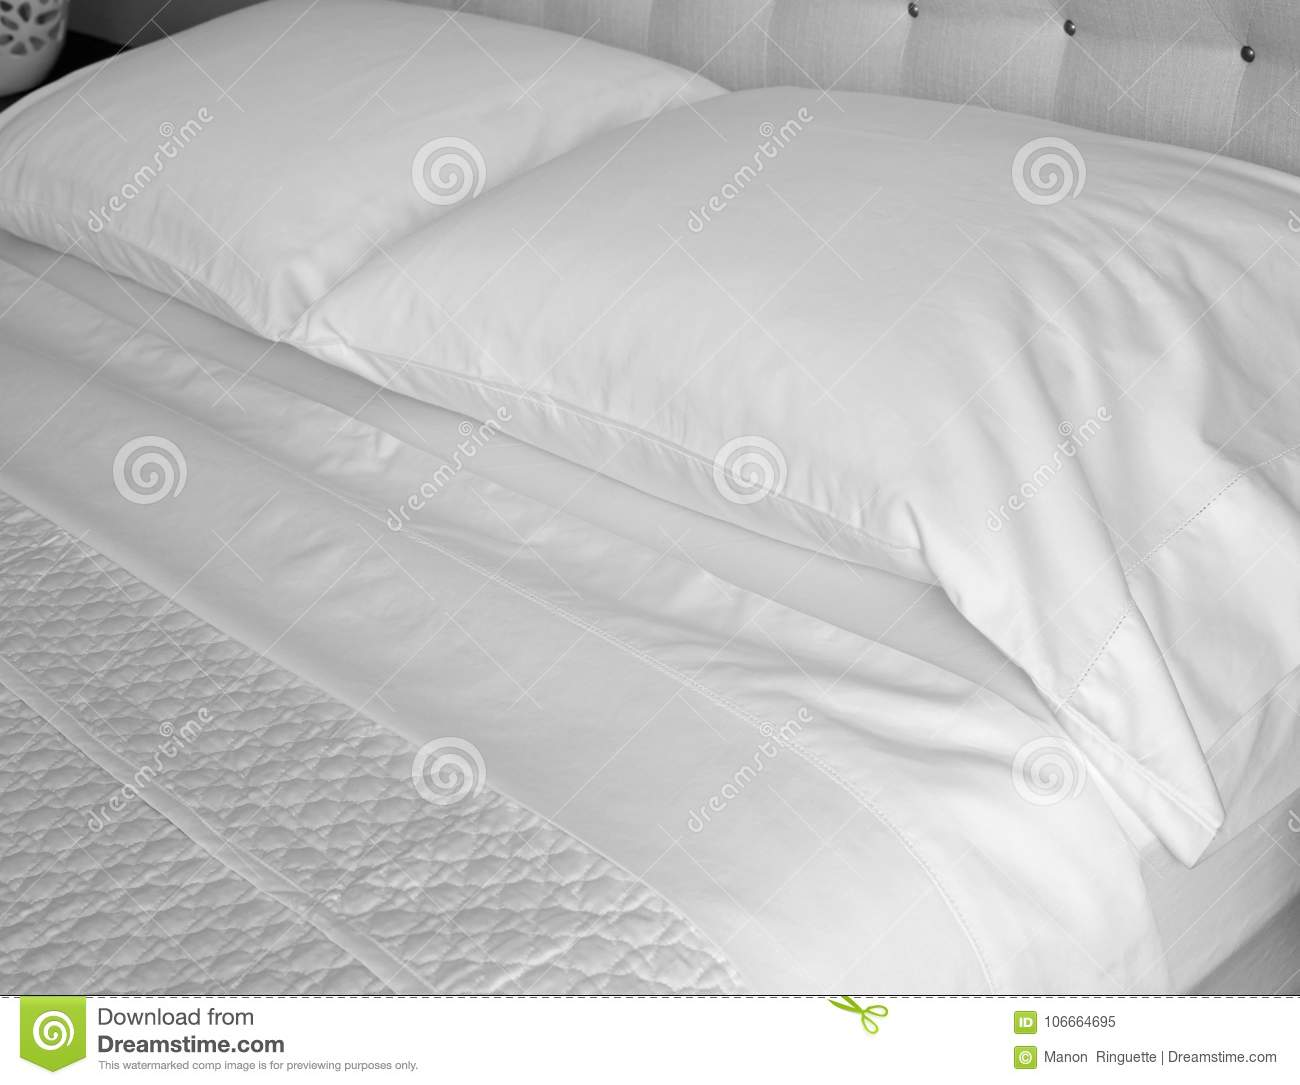 Good Housekeeping Reduces The Possibility Of Dust Mites Or Bed Bug  Infestations In The Home And Hospitality Industry. A Mattress Protector And  Fresh Sheets ...